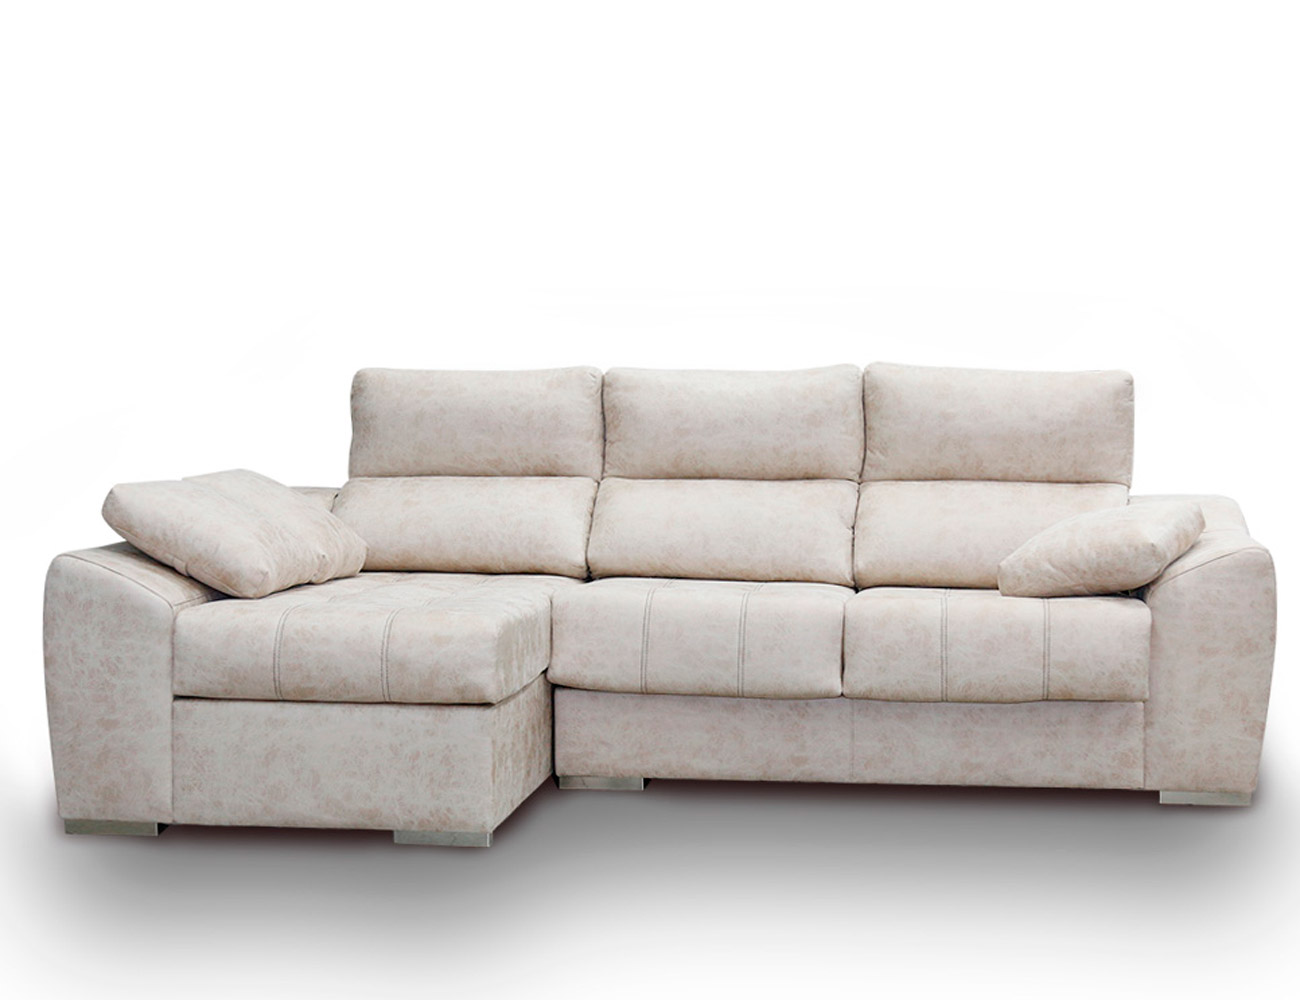 Sofa chaiselongue anti manchas beig blanco13